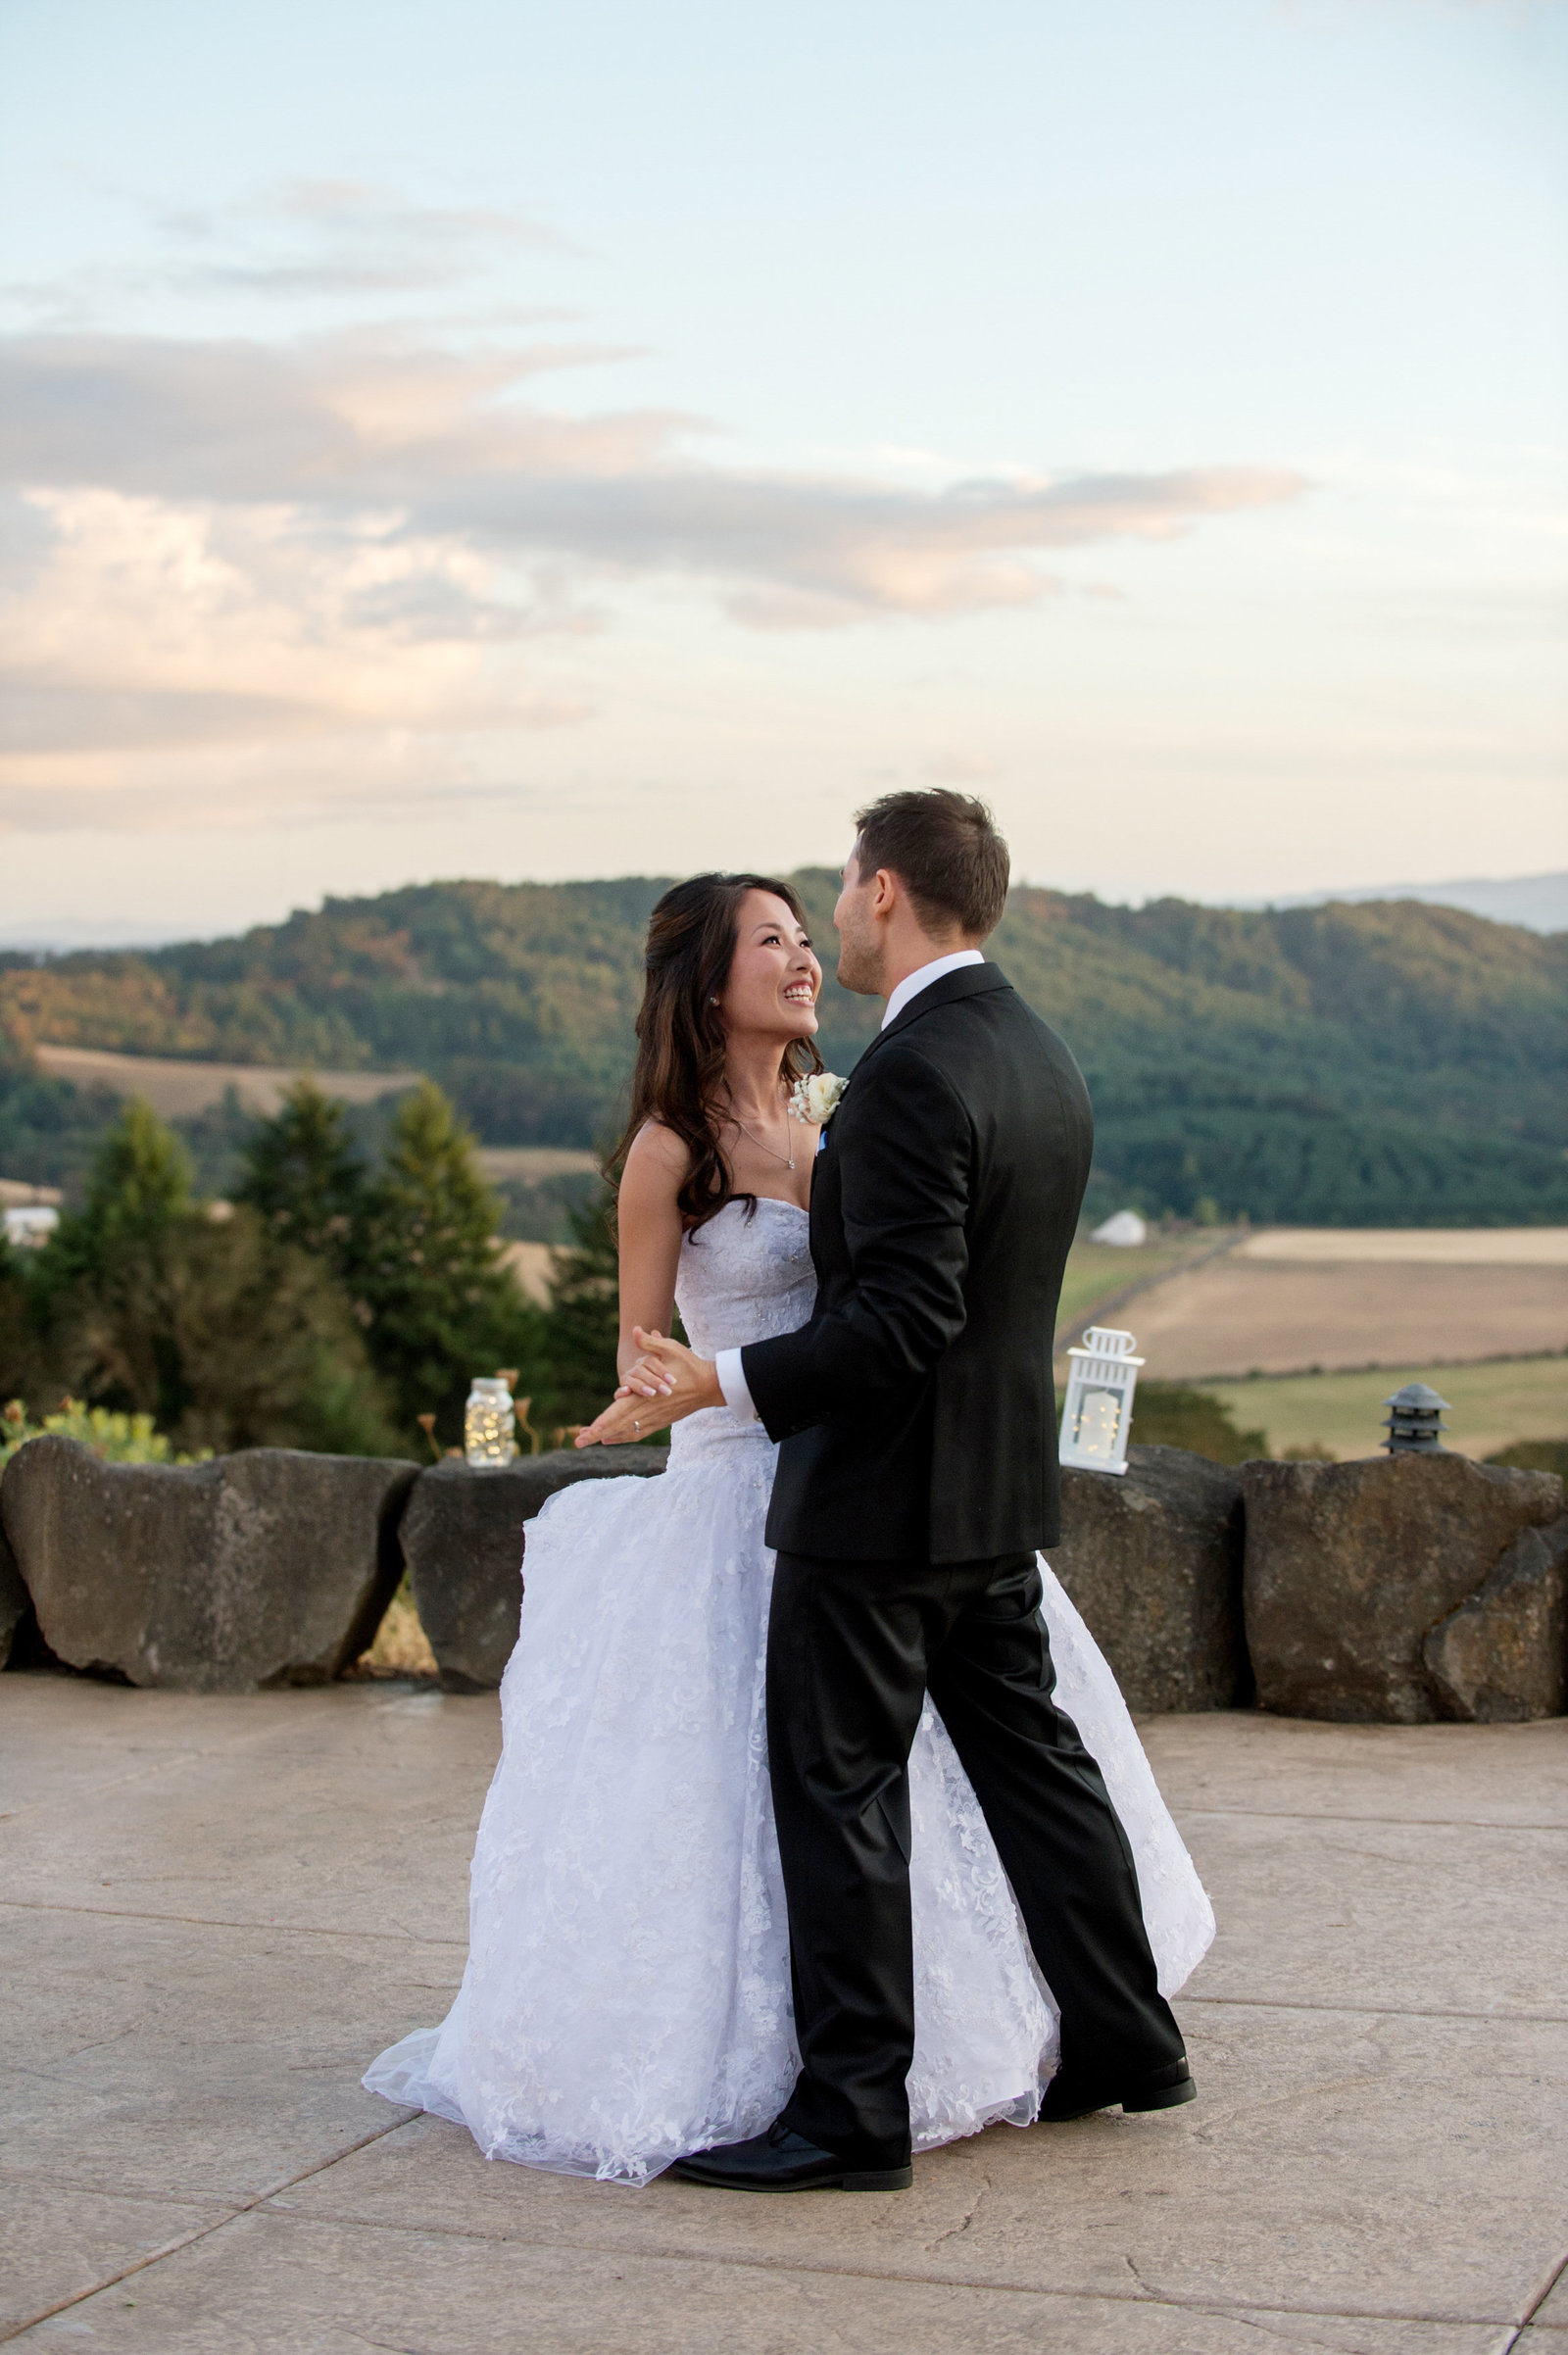 Crystal Genes Photography YOUNGBERG HILL WEDDING_150903-183139